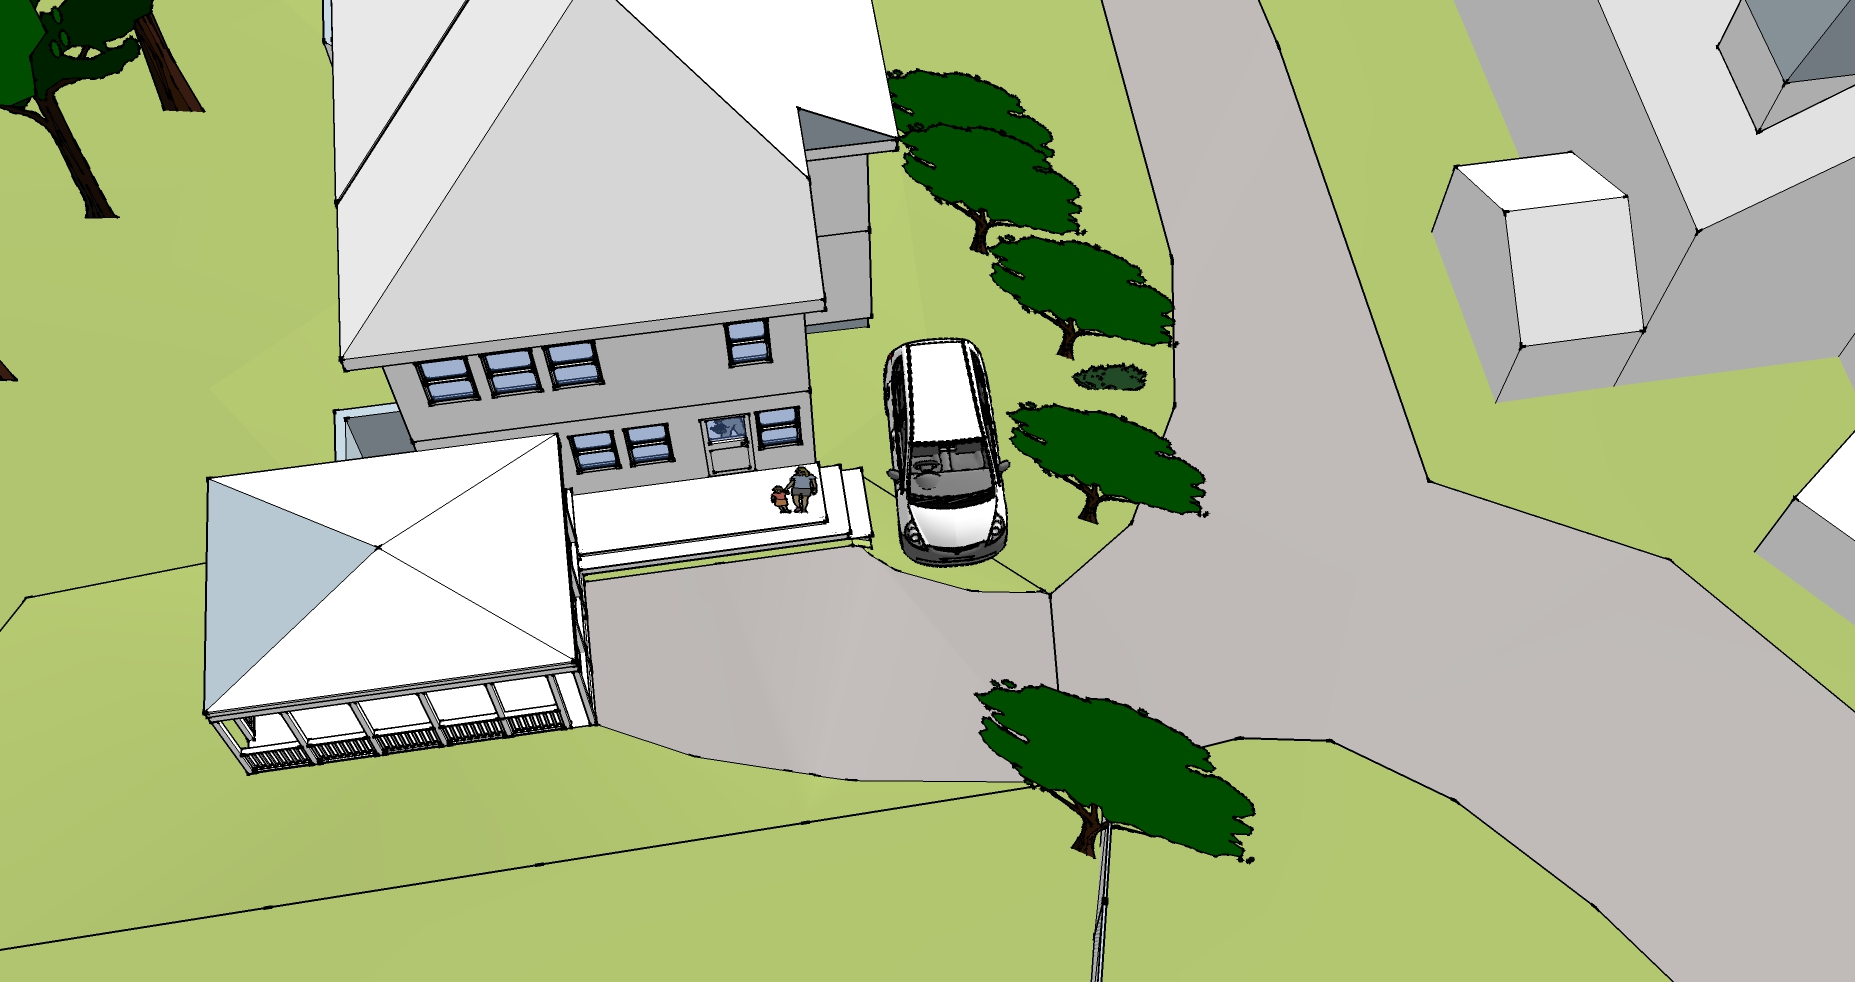 Plan view of corner parking spot idea